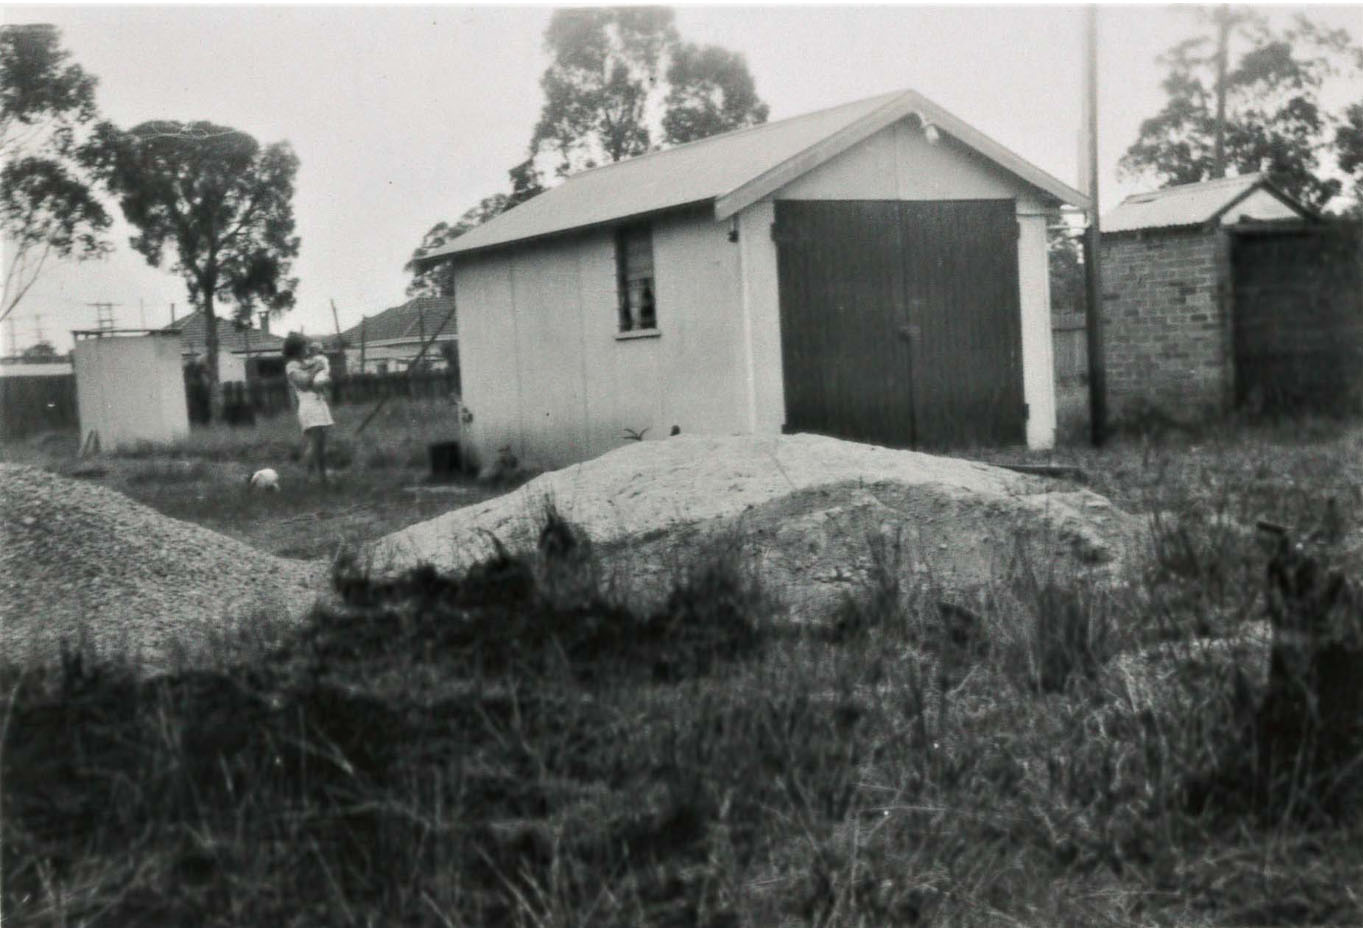 Figure 3. The Turtles' owner-built garage in Fairfield, outside Sydney, Australia, 1952. Source: Laurie Turtle.